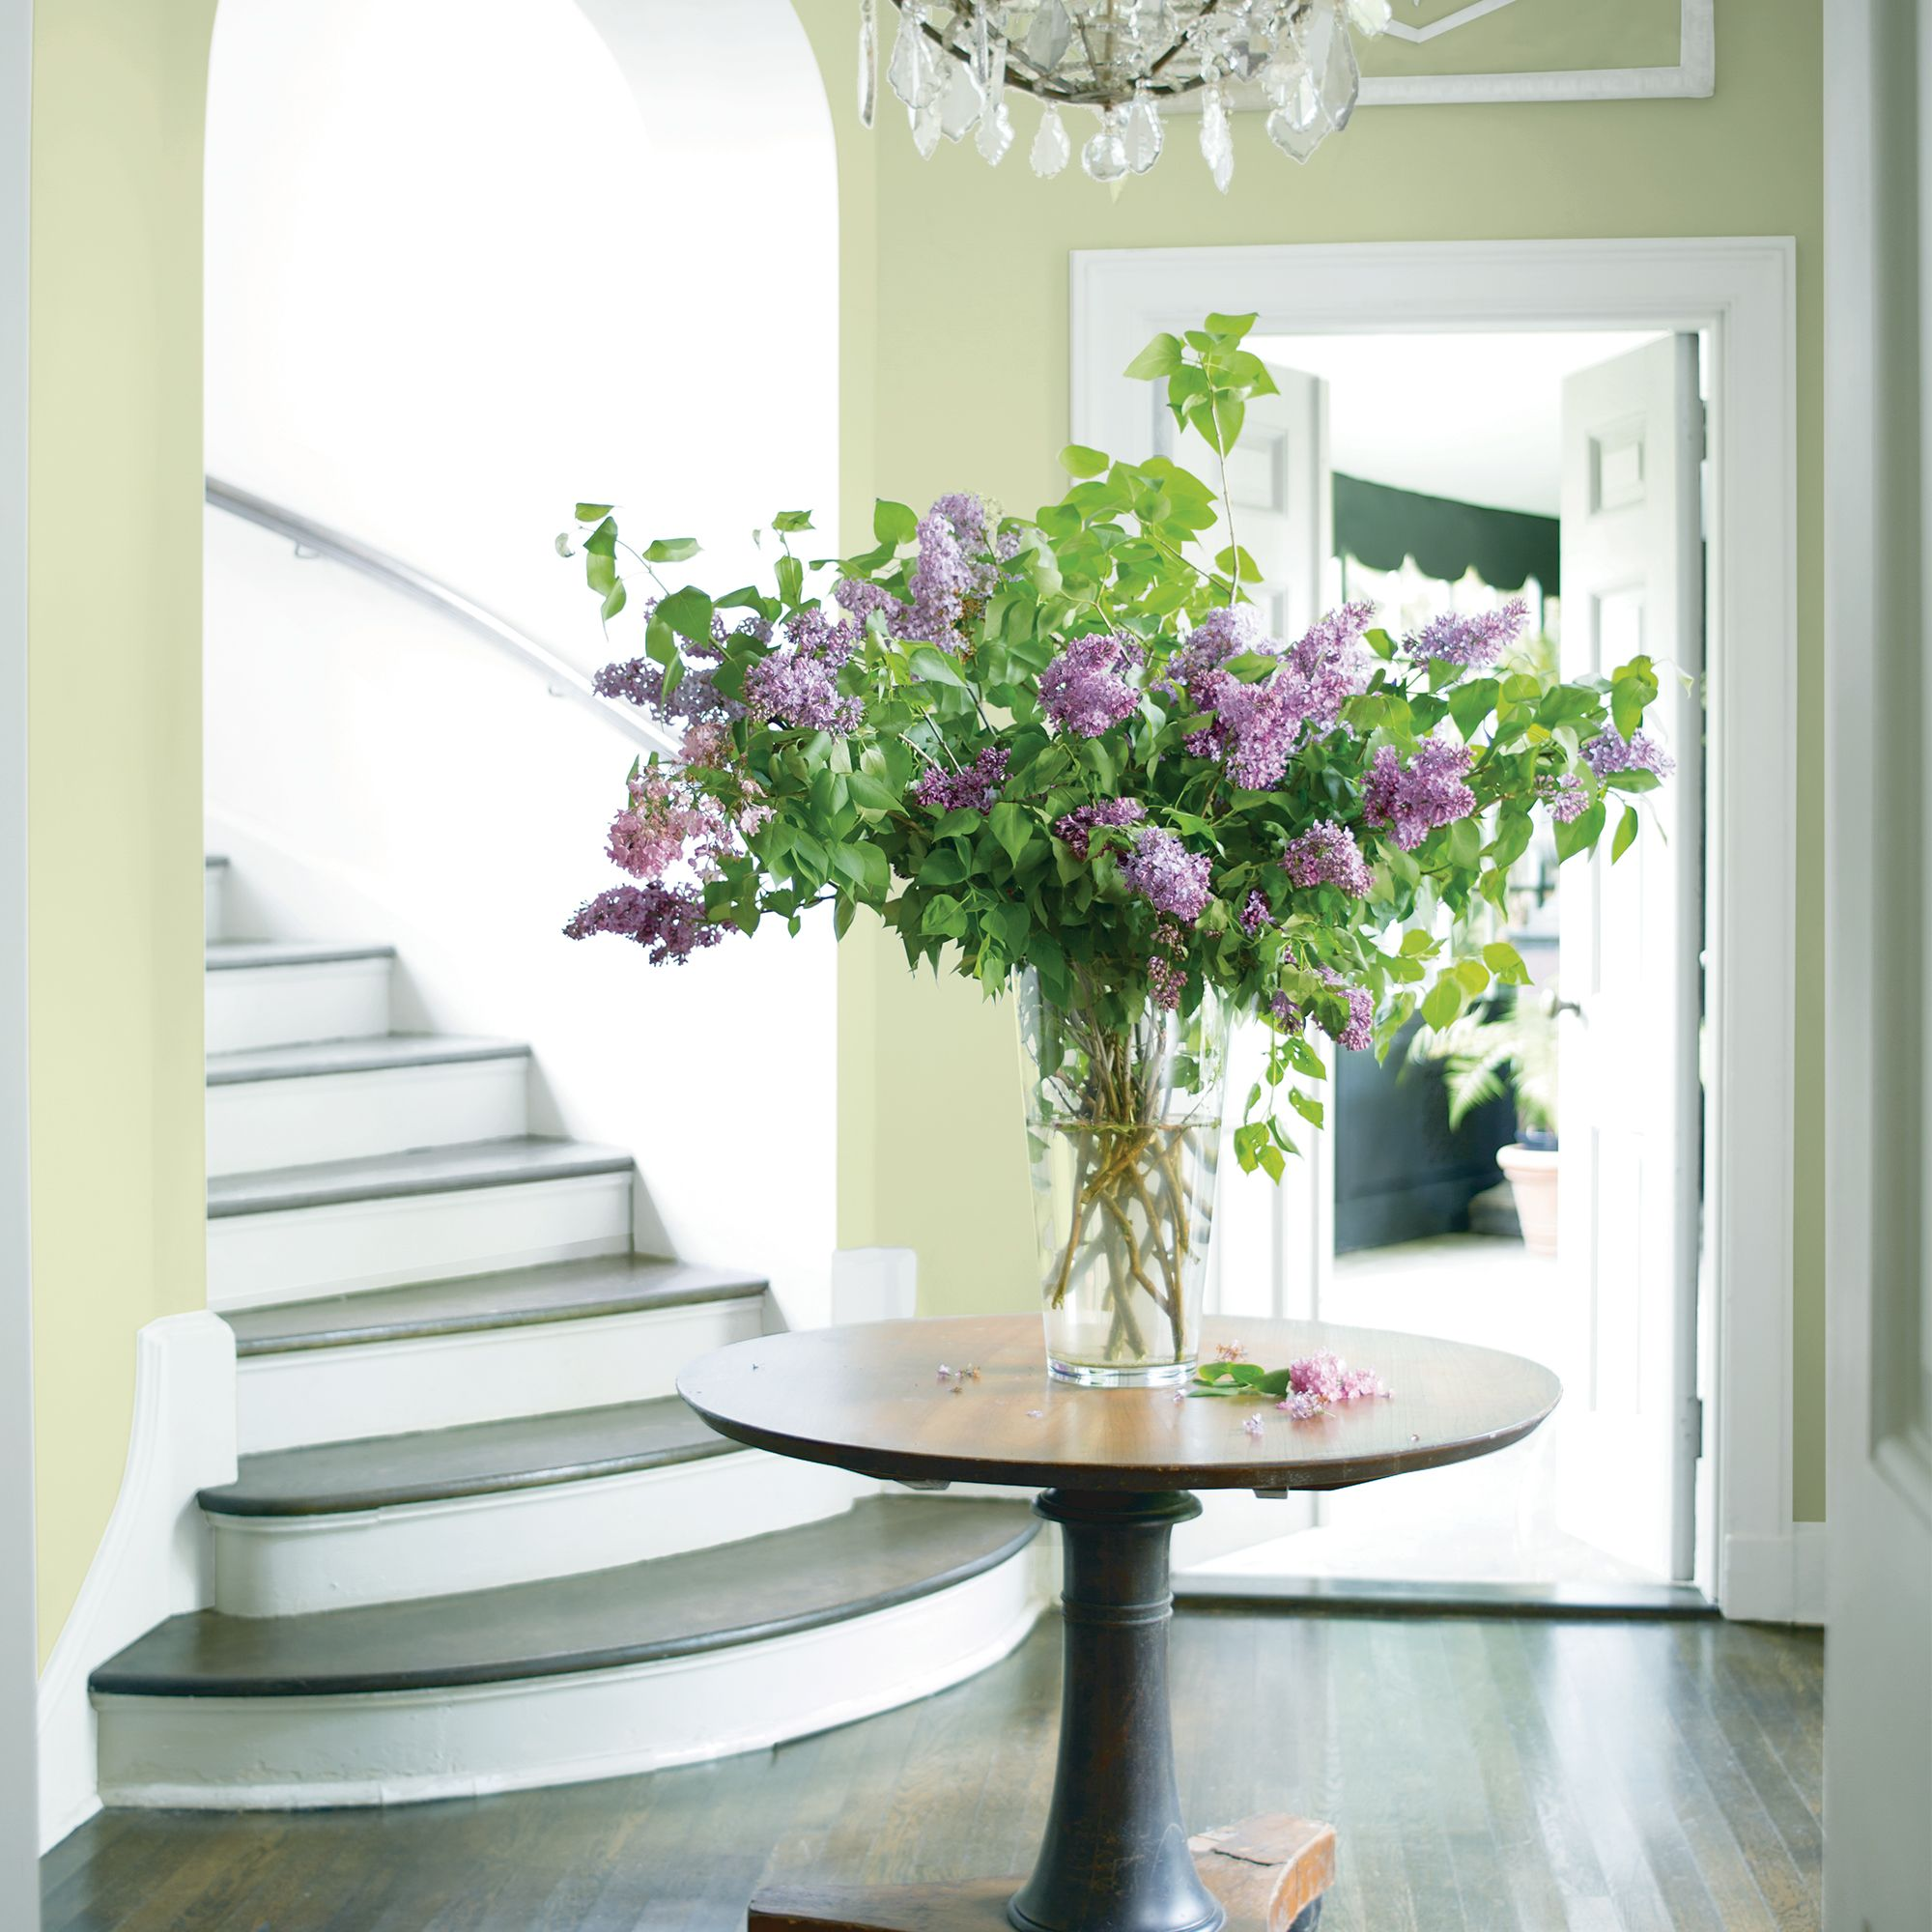 Entry with Center Table with Flowers